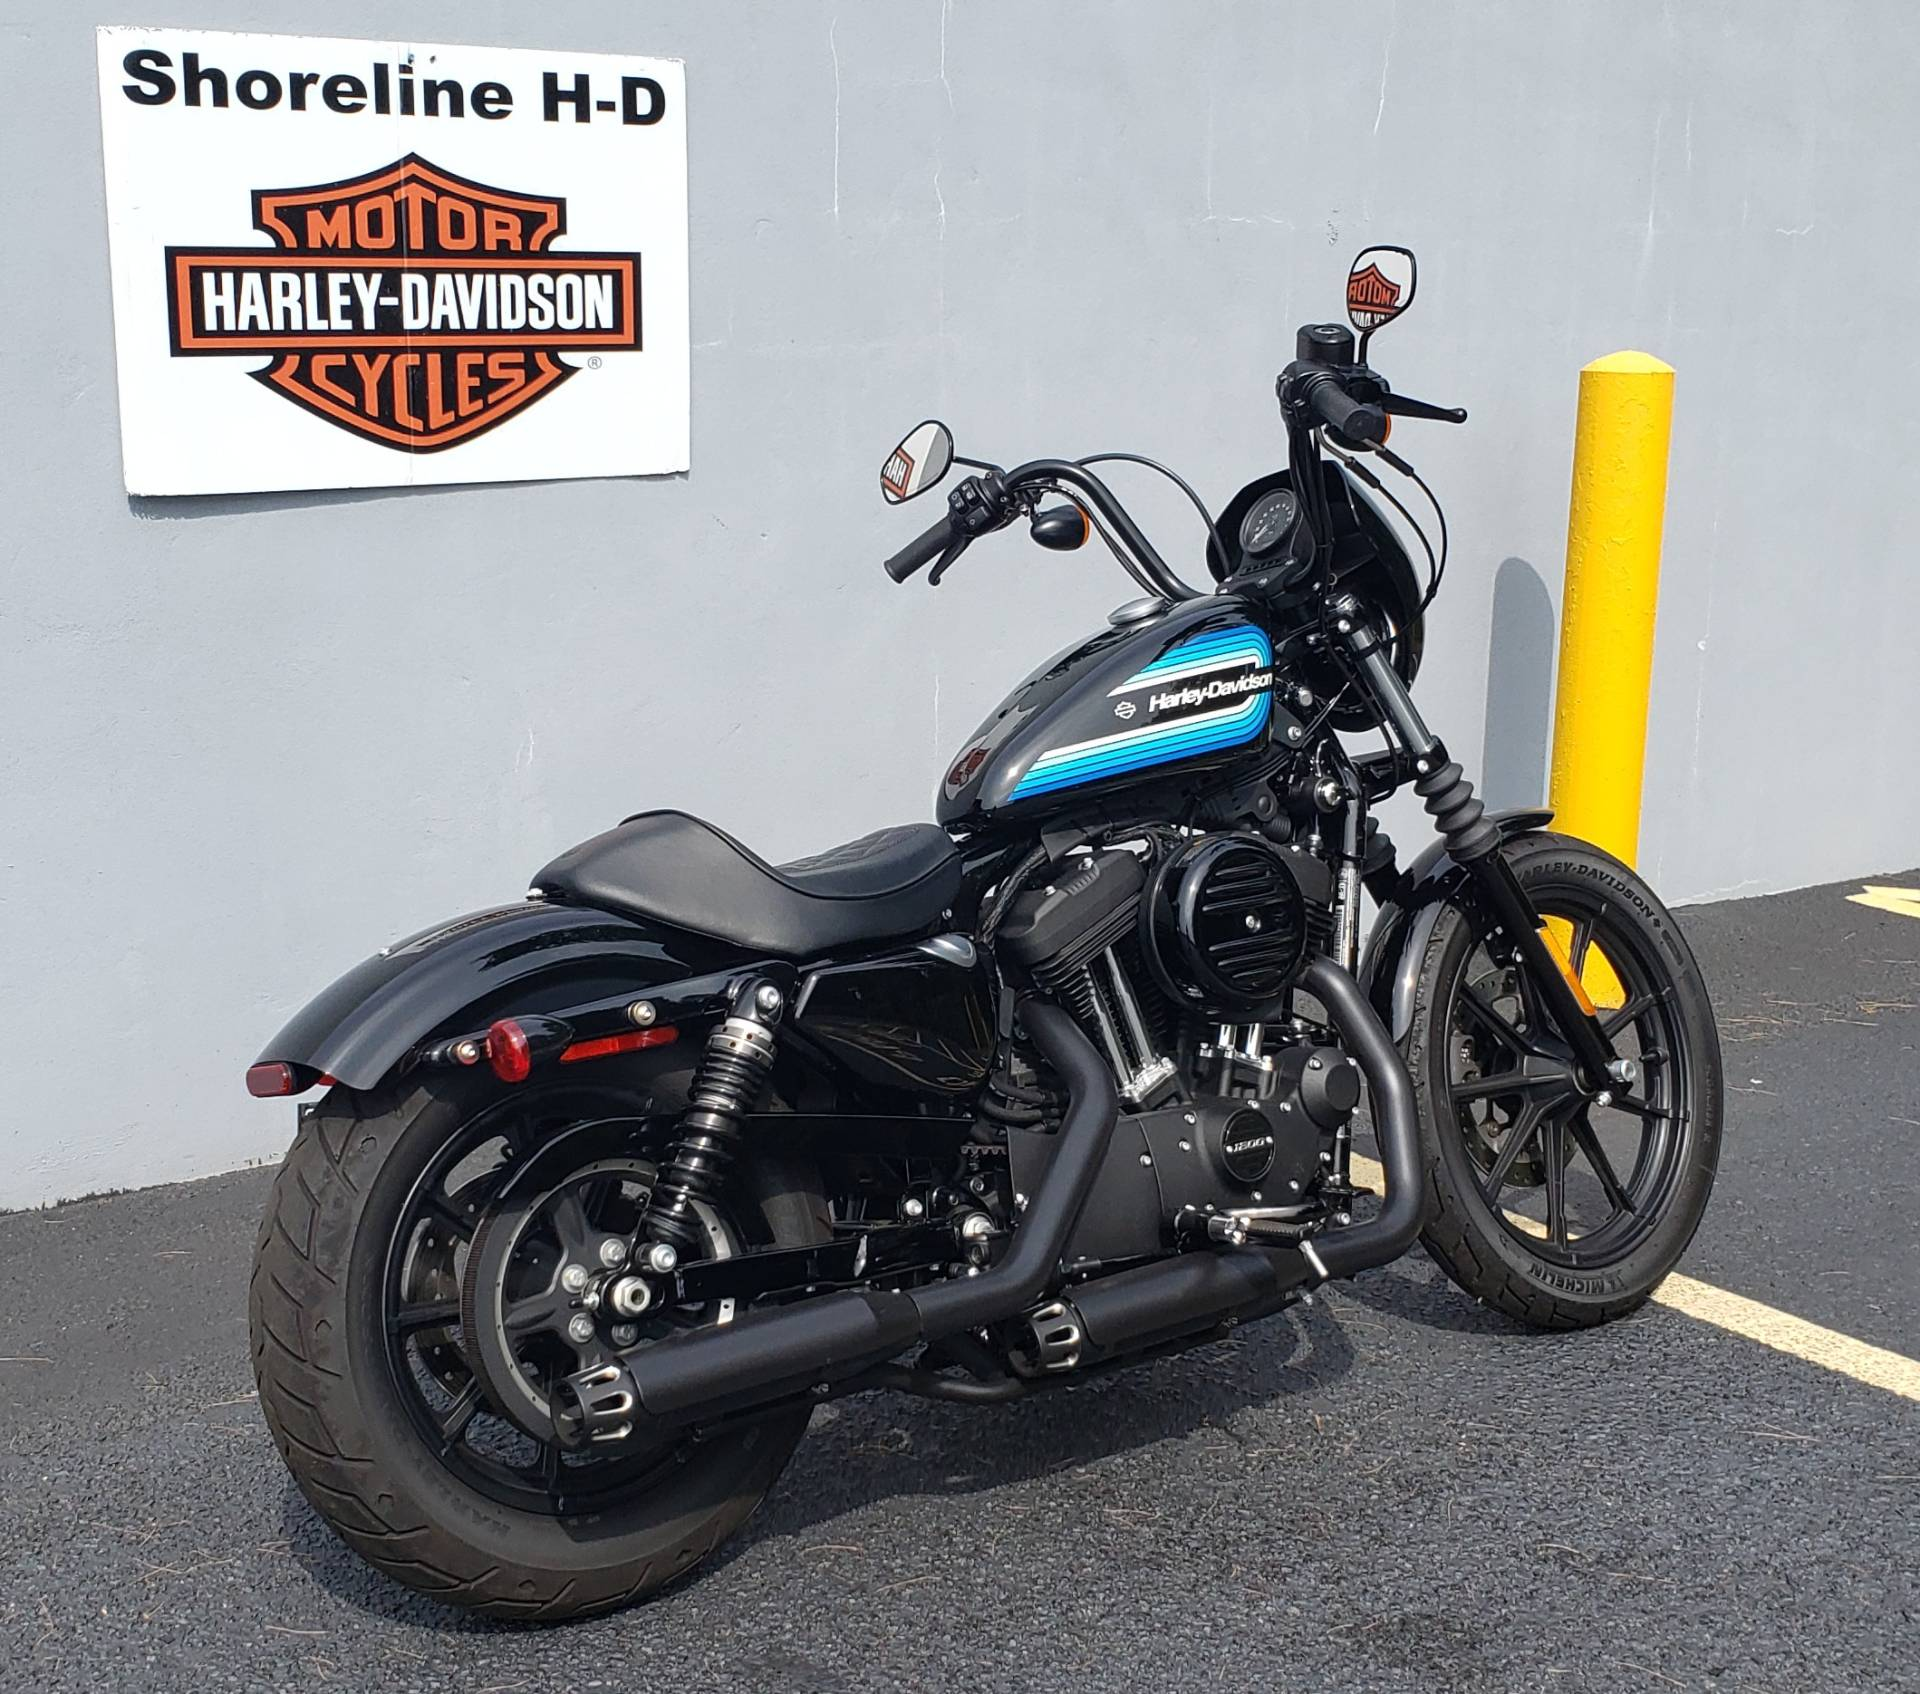 2018 Harley-Davidson Iron 1200 in West Long Branch, New Jersey - Photo 5